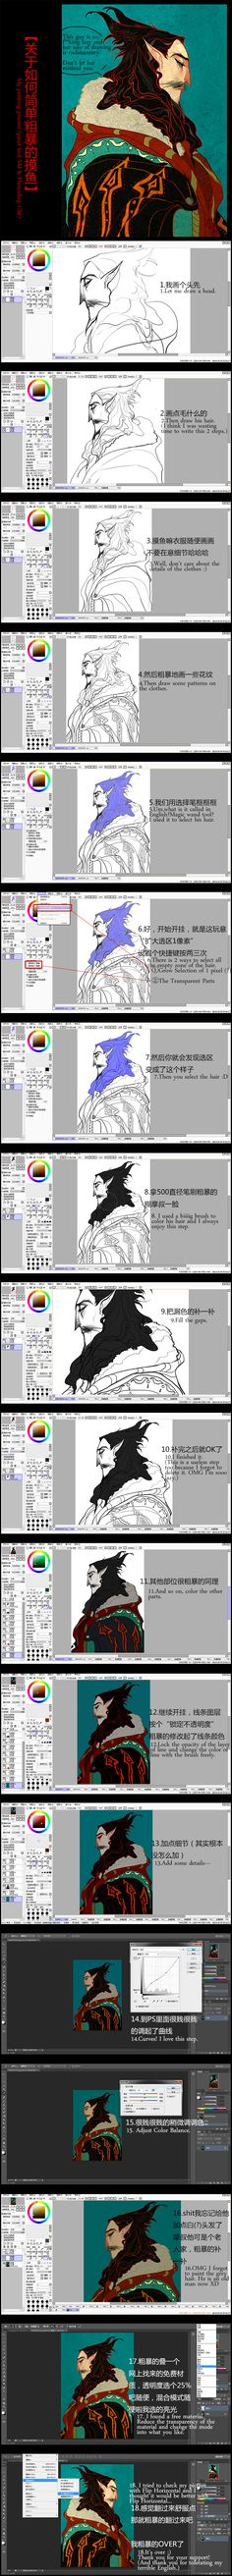 My painting process - Old Mephis by Wavesheep.deviantart.com on @deviantART